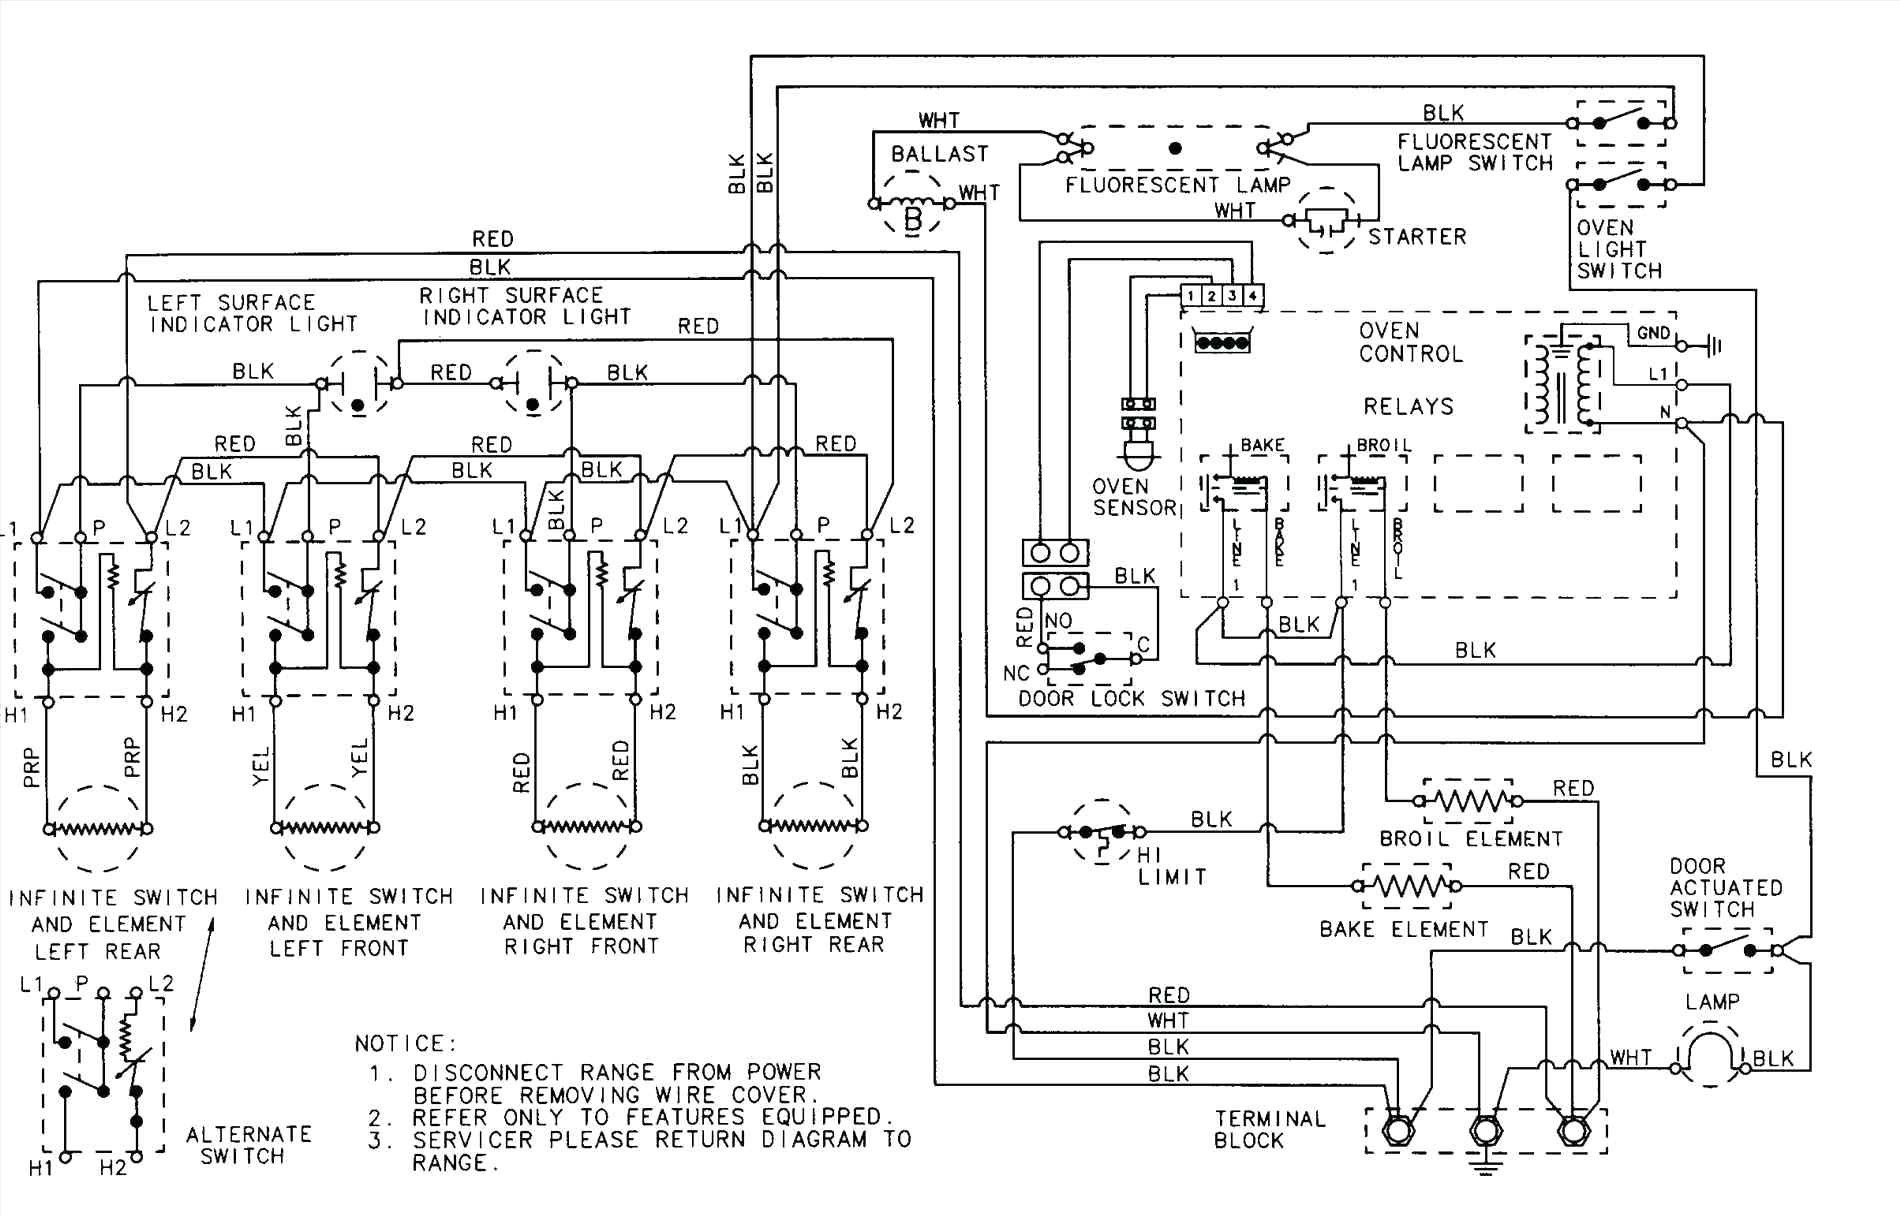 Clothes Dryer Wiring Diagram Ge Electric Dryer Timer Wiring Diagram Free Downloads Ge Dryer Timer Of Clothes Dryer Wiring Diagram Wiring Diagram for Hot Plate Best Electric Hot Plate Wiring Diagram